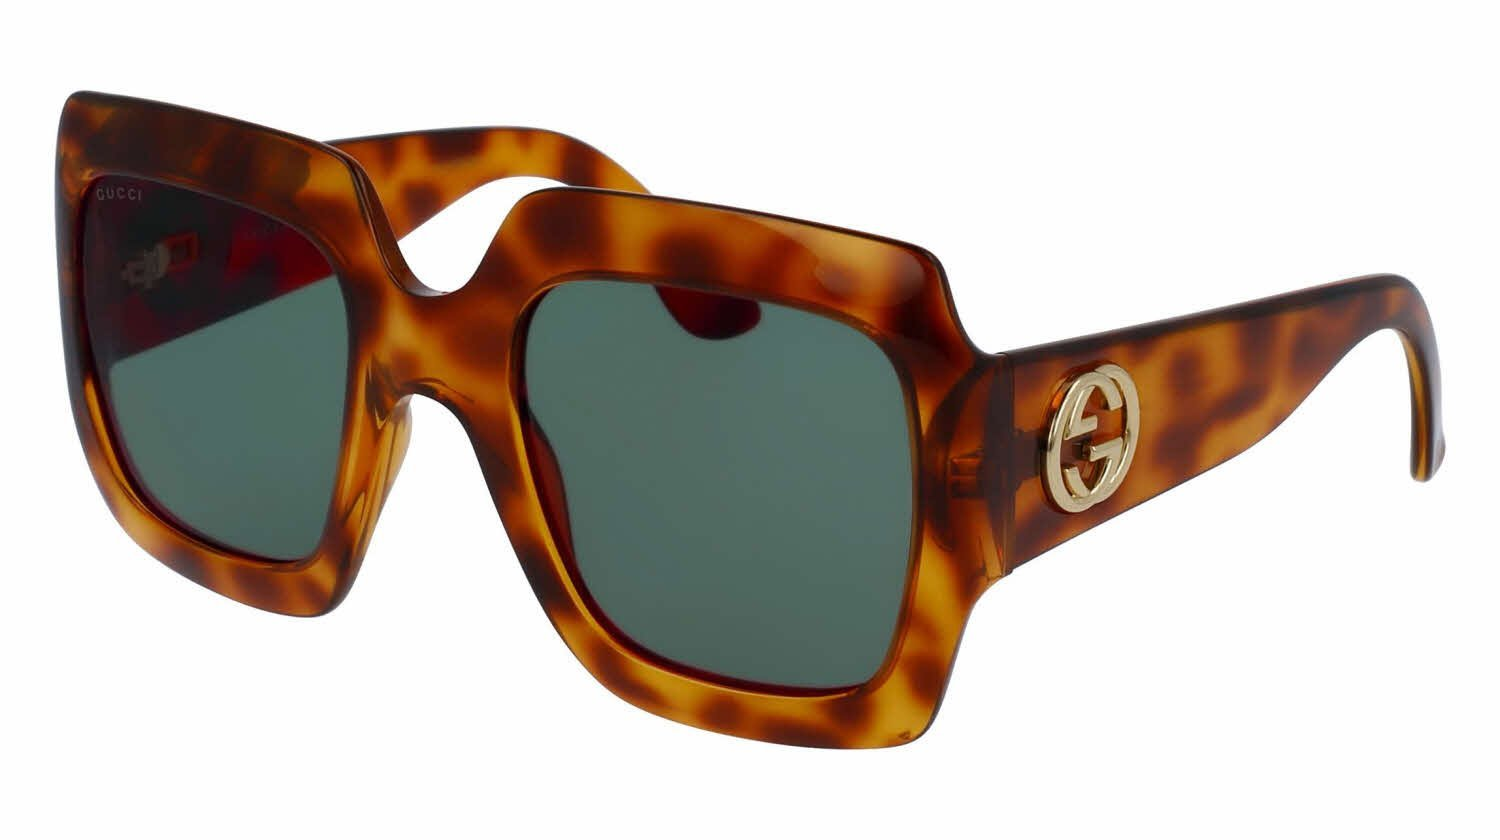 80d59a4417e These men s tortoise shell sunglasses by Persolmimic the famed aviator  profile. Blue gradient lenses give a fun pop against glowing amber hues.